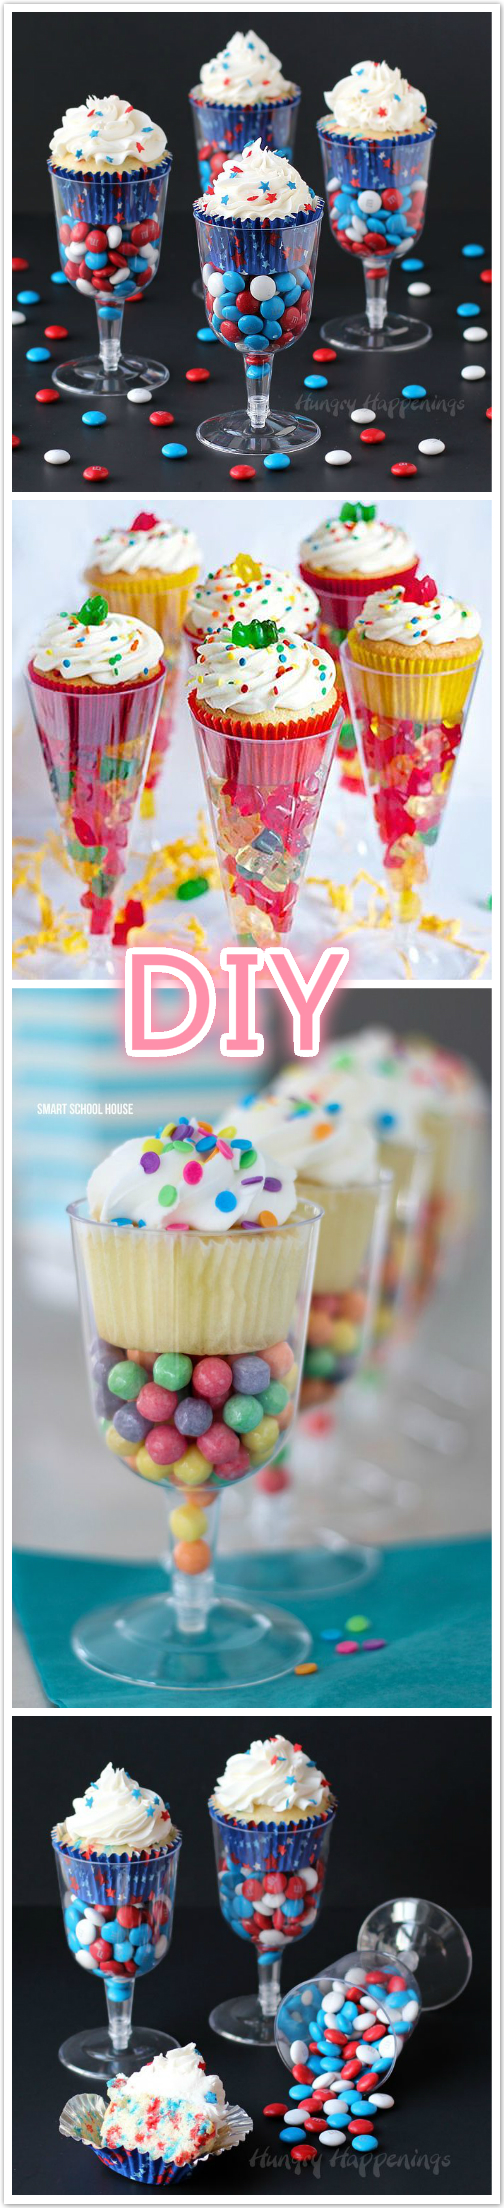 DIY Plastic Champagne Cupcake Stand